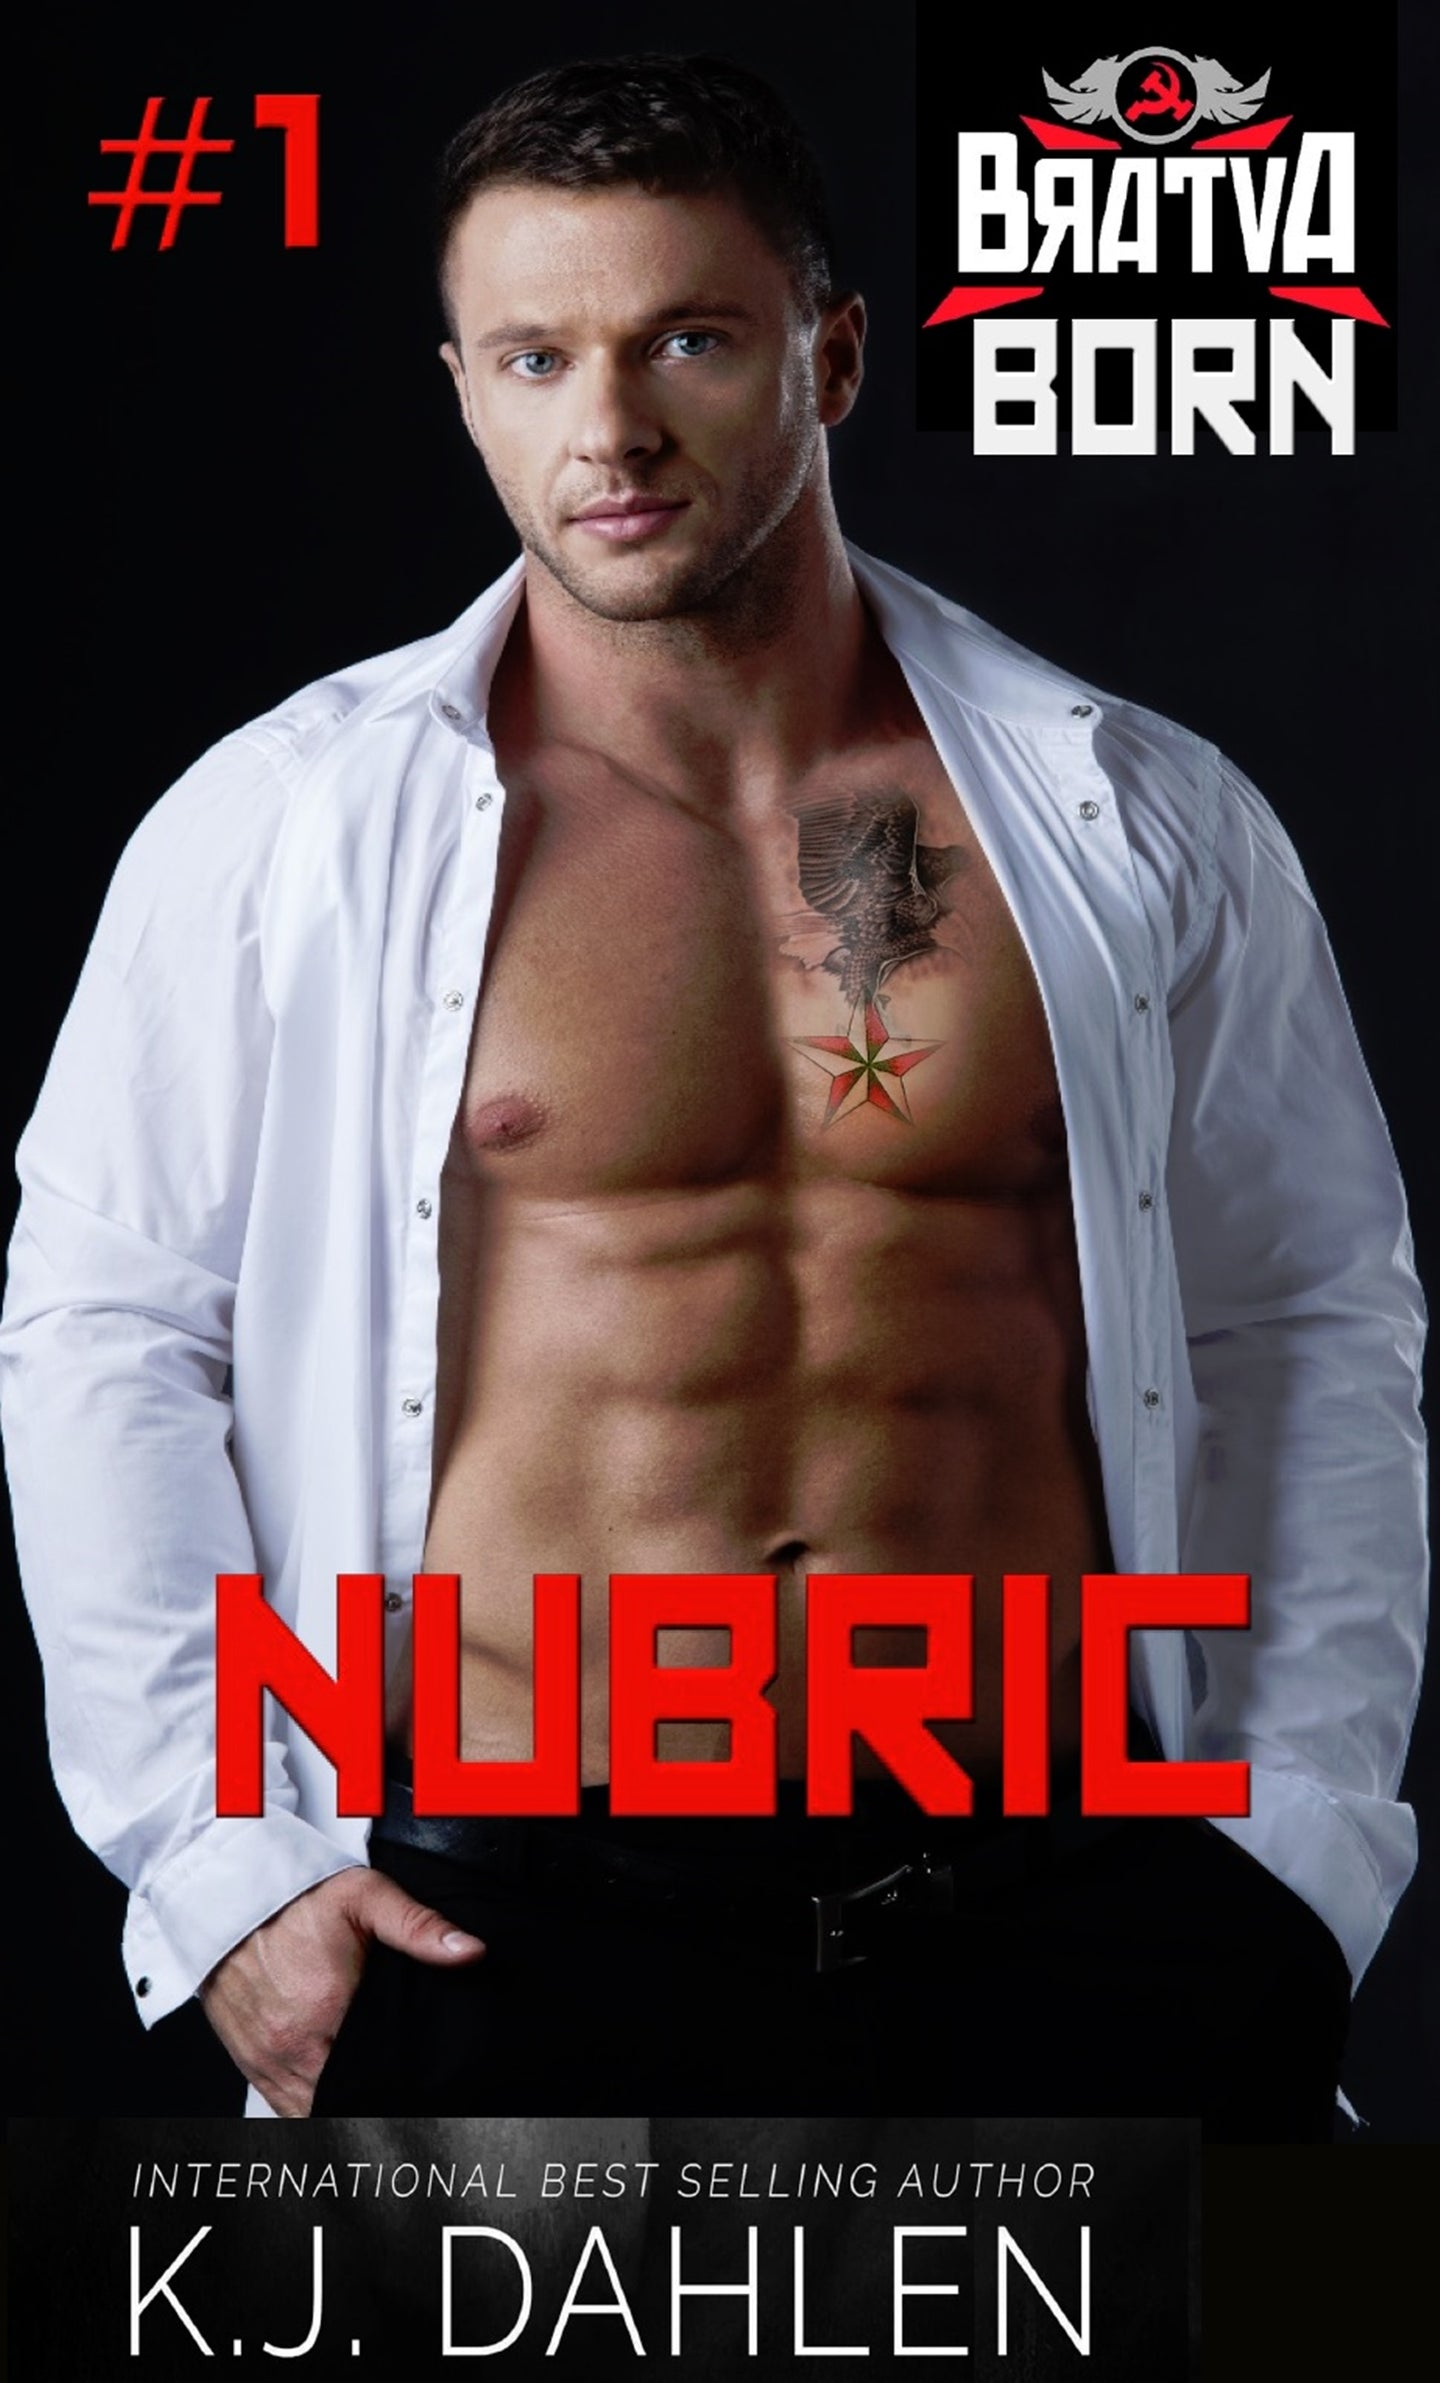 Nubric-Bratva-Born-#1-Single